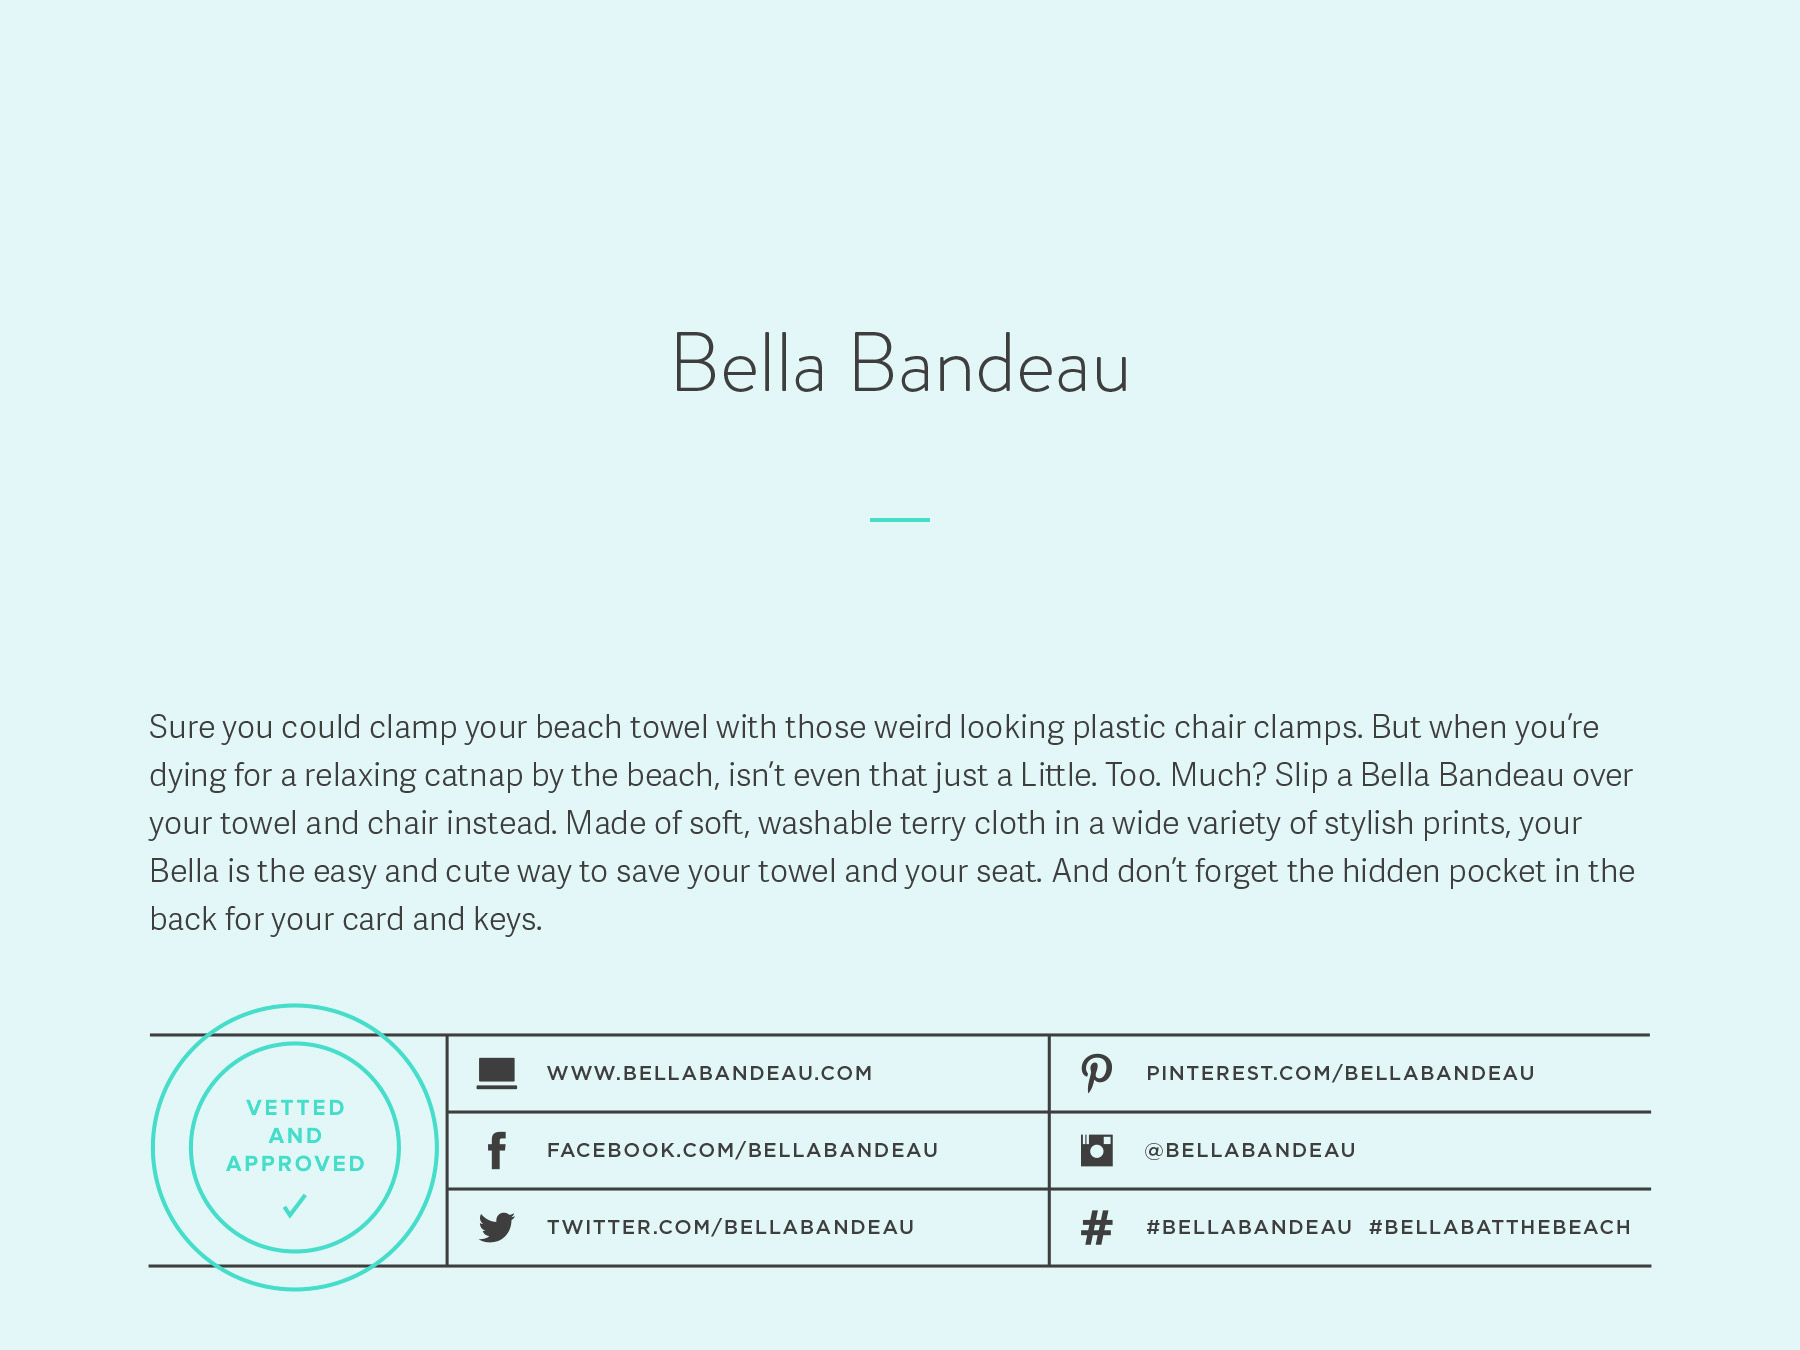 Bella Bandeau company naming process